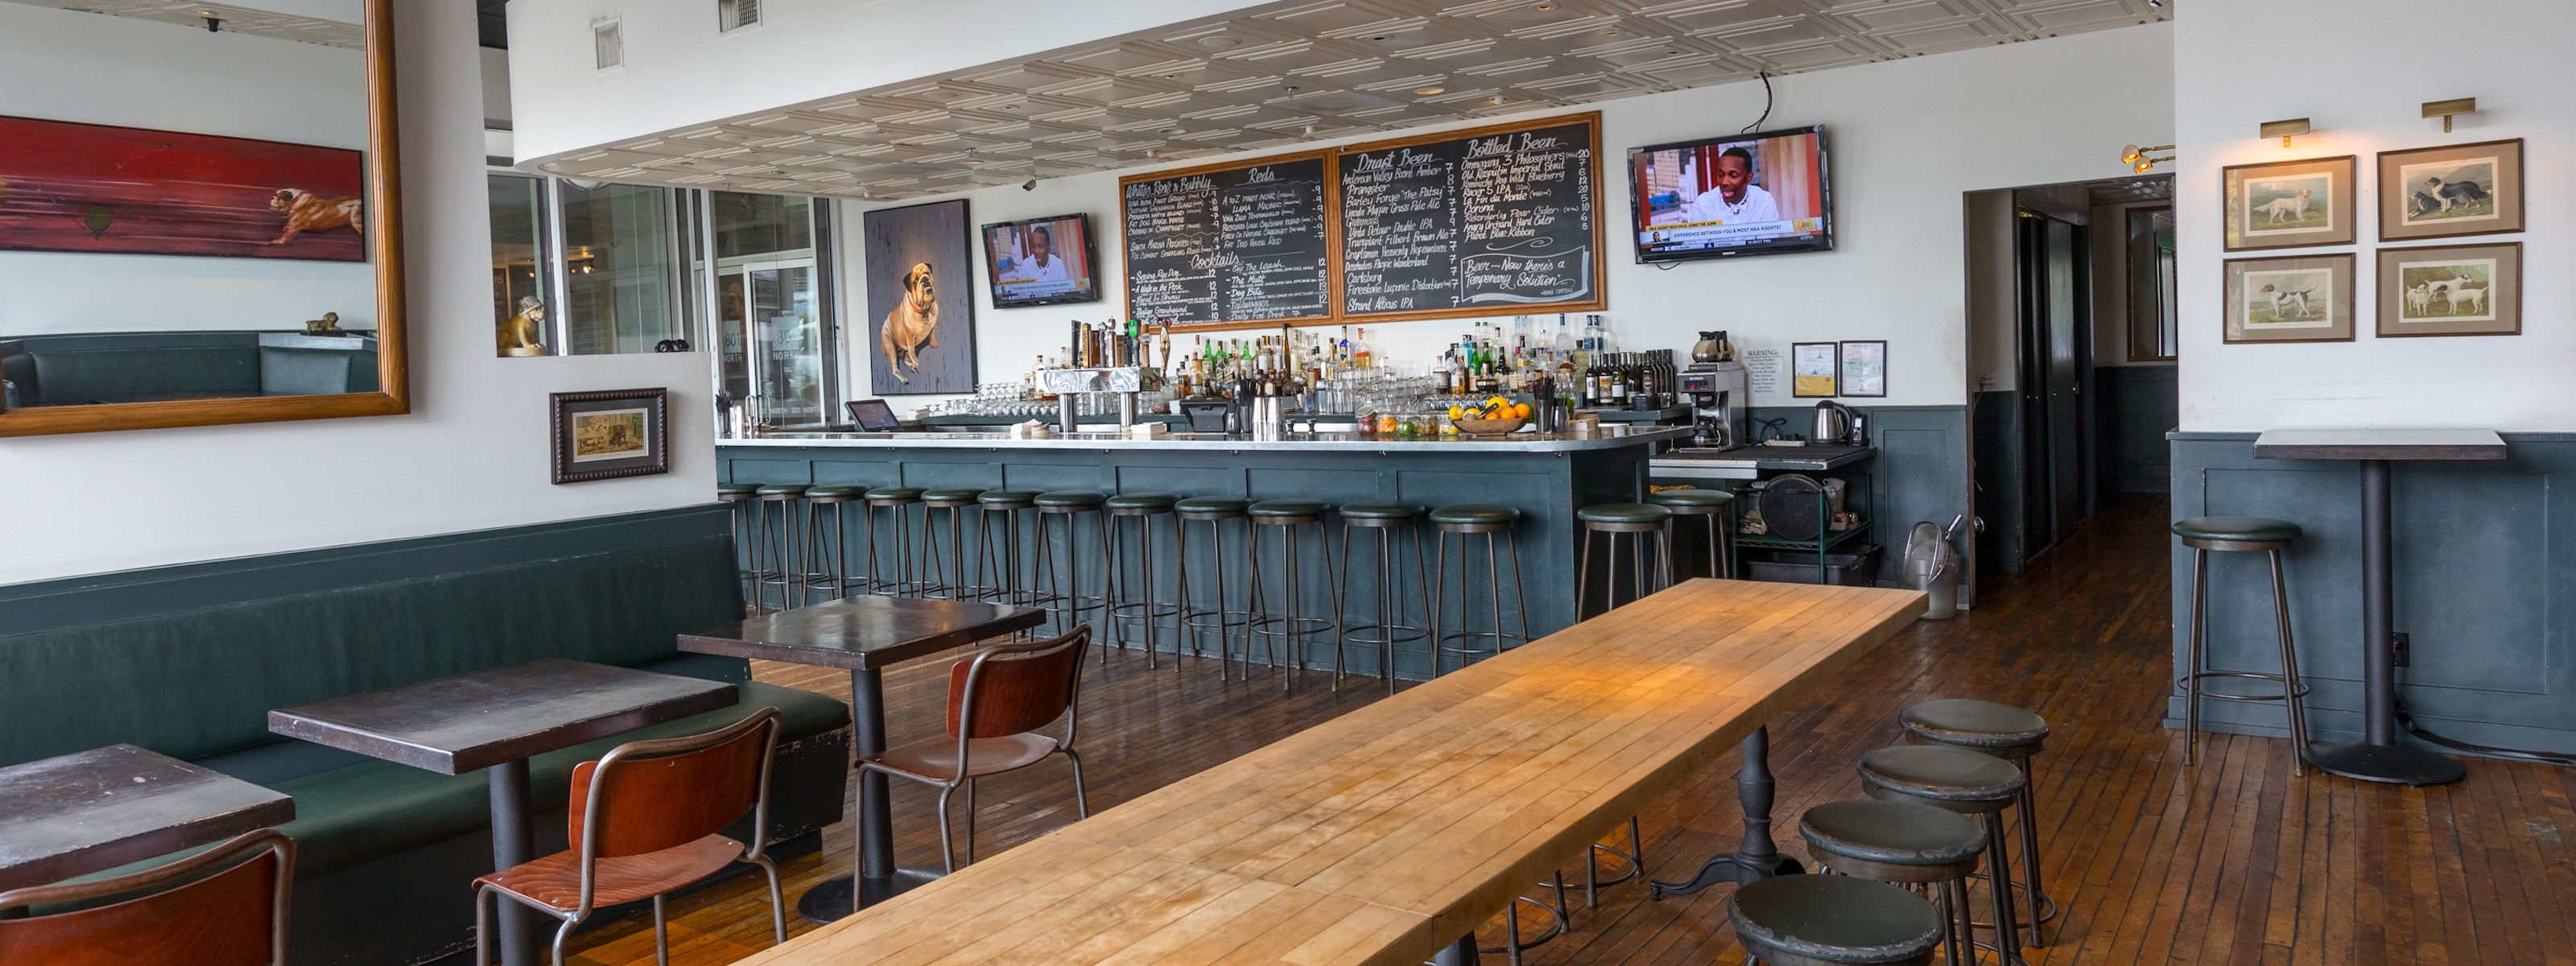 Where To Have Dinner For Around 30 In West Hollywood West